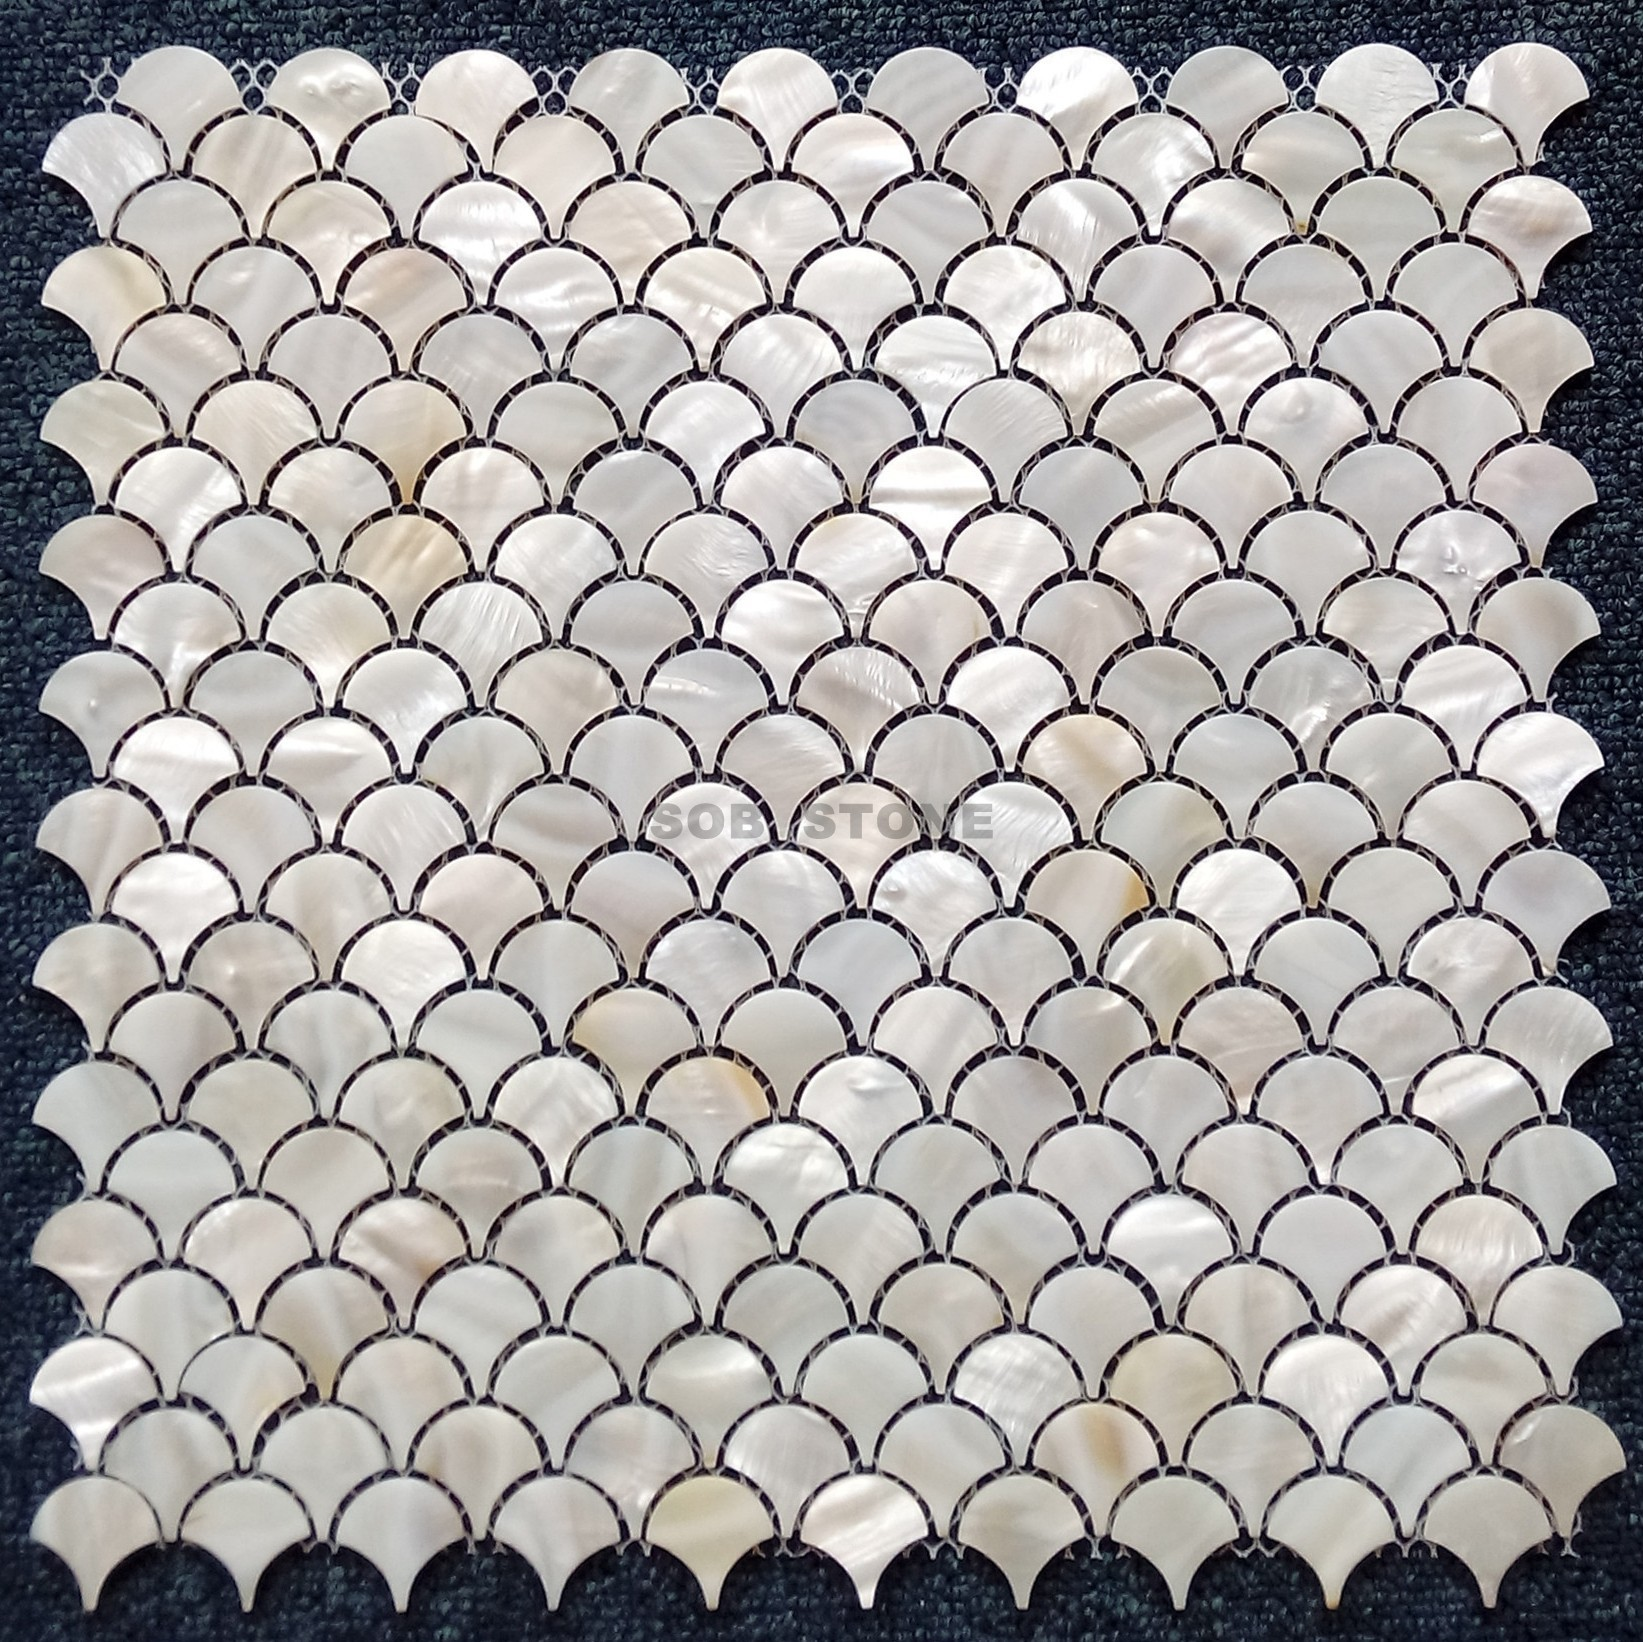 White Mother of Pearl Fan Mosaic Tiles